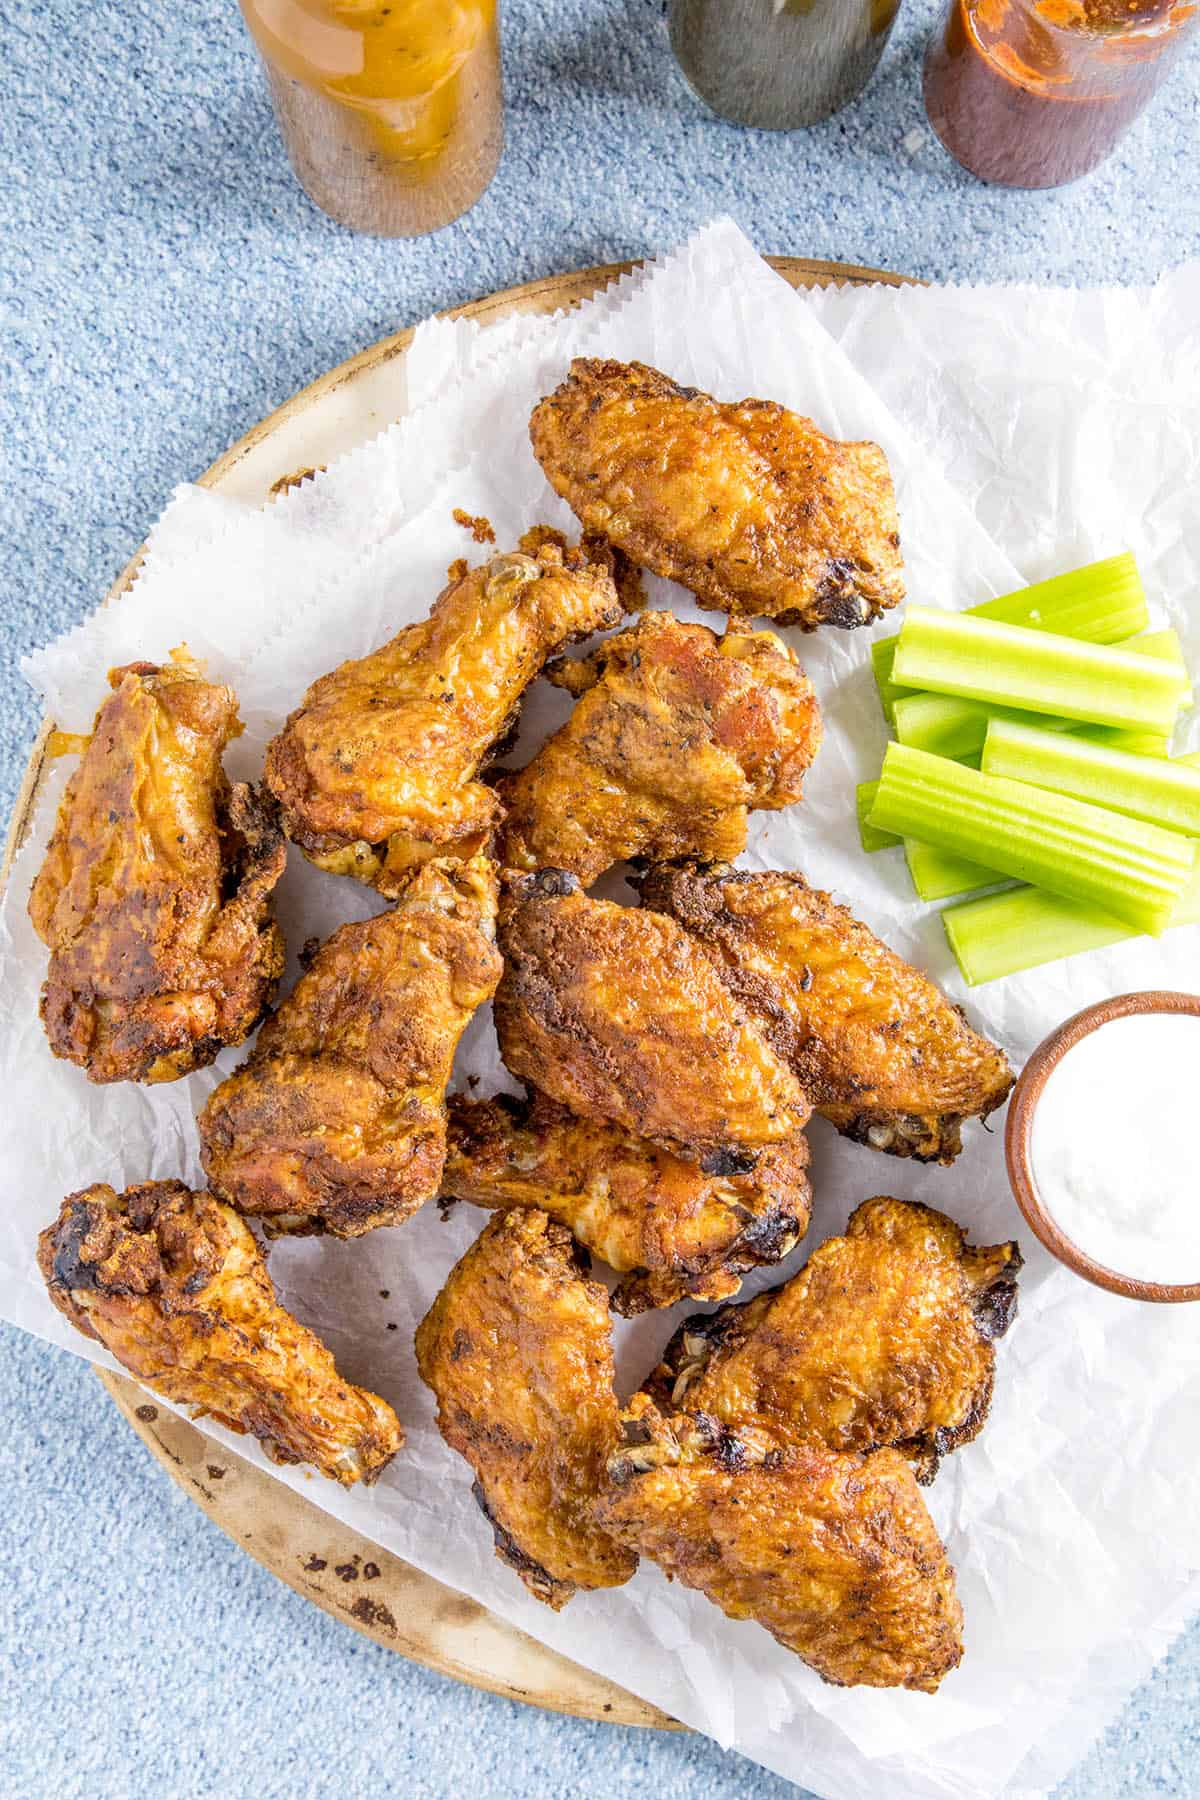 Crispy Baked Chicken Wings on a platter, served with hot sauce, celery and ranch dressing